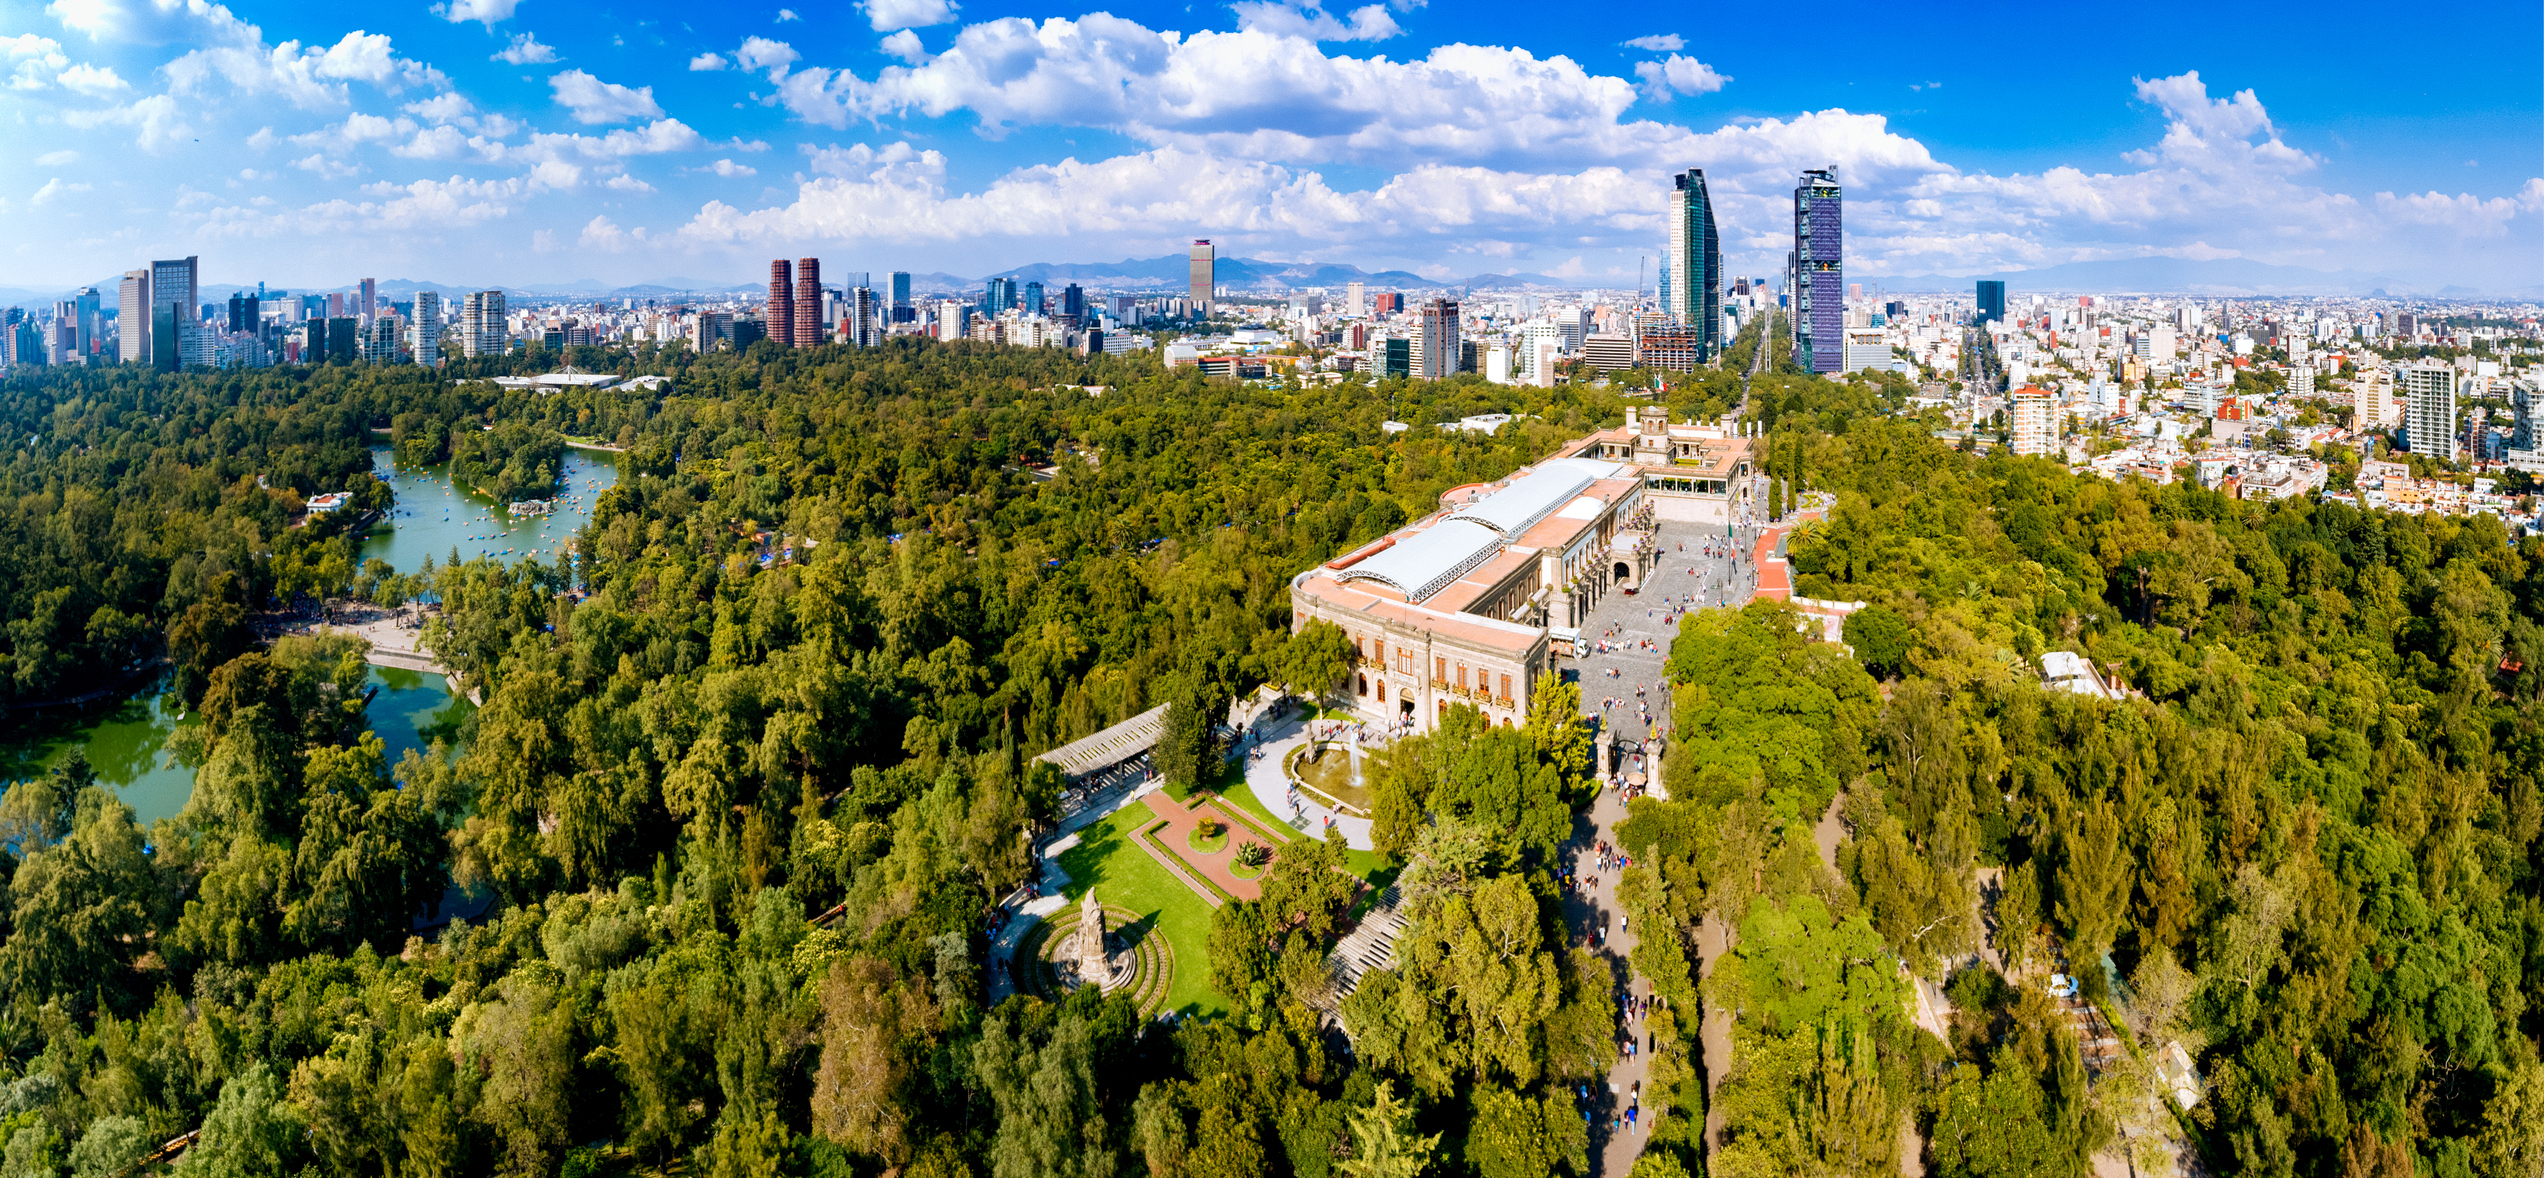 An expanse of forrest, with Mexico City in the background